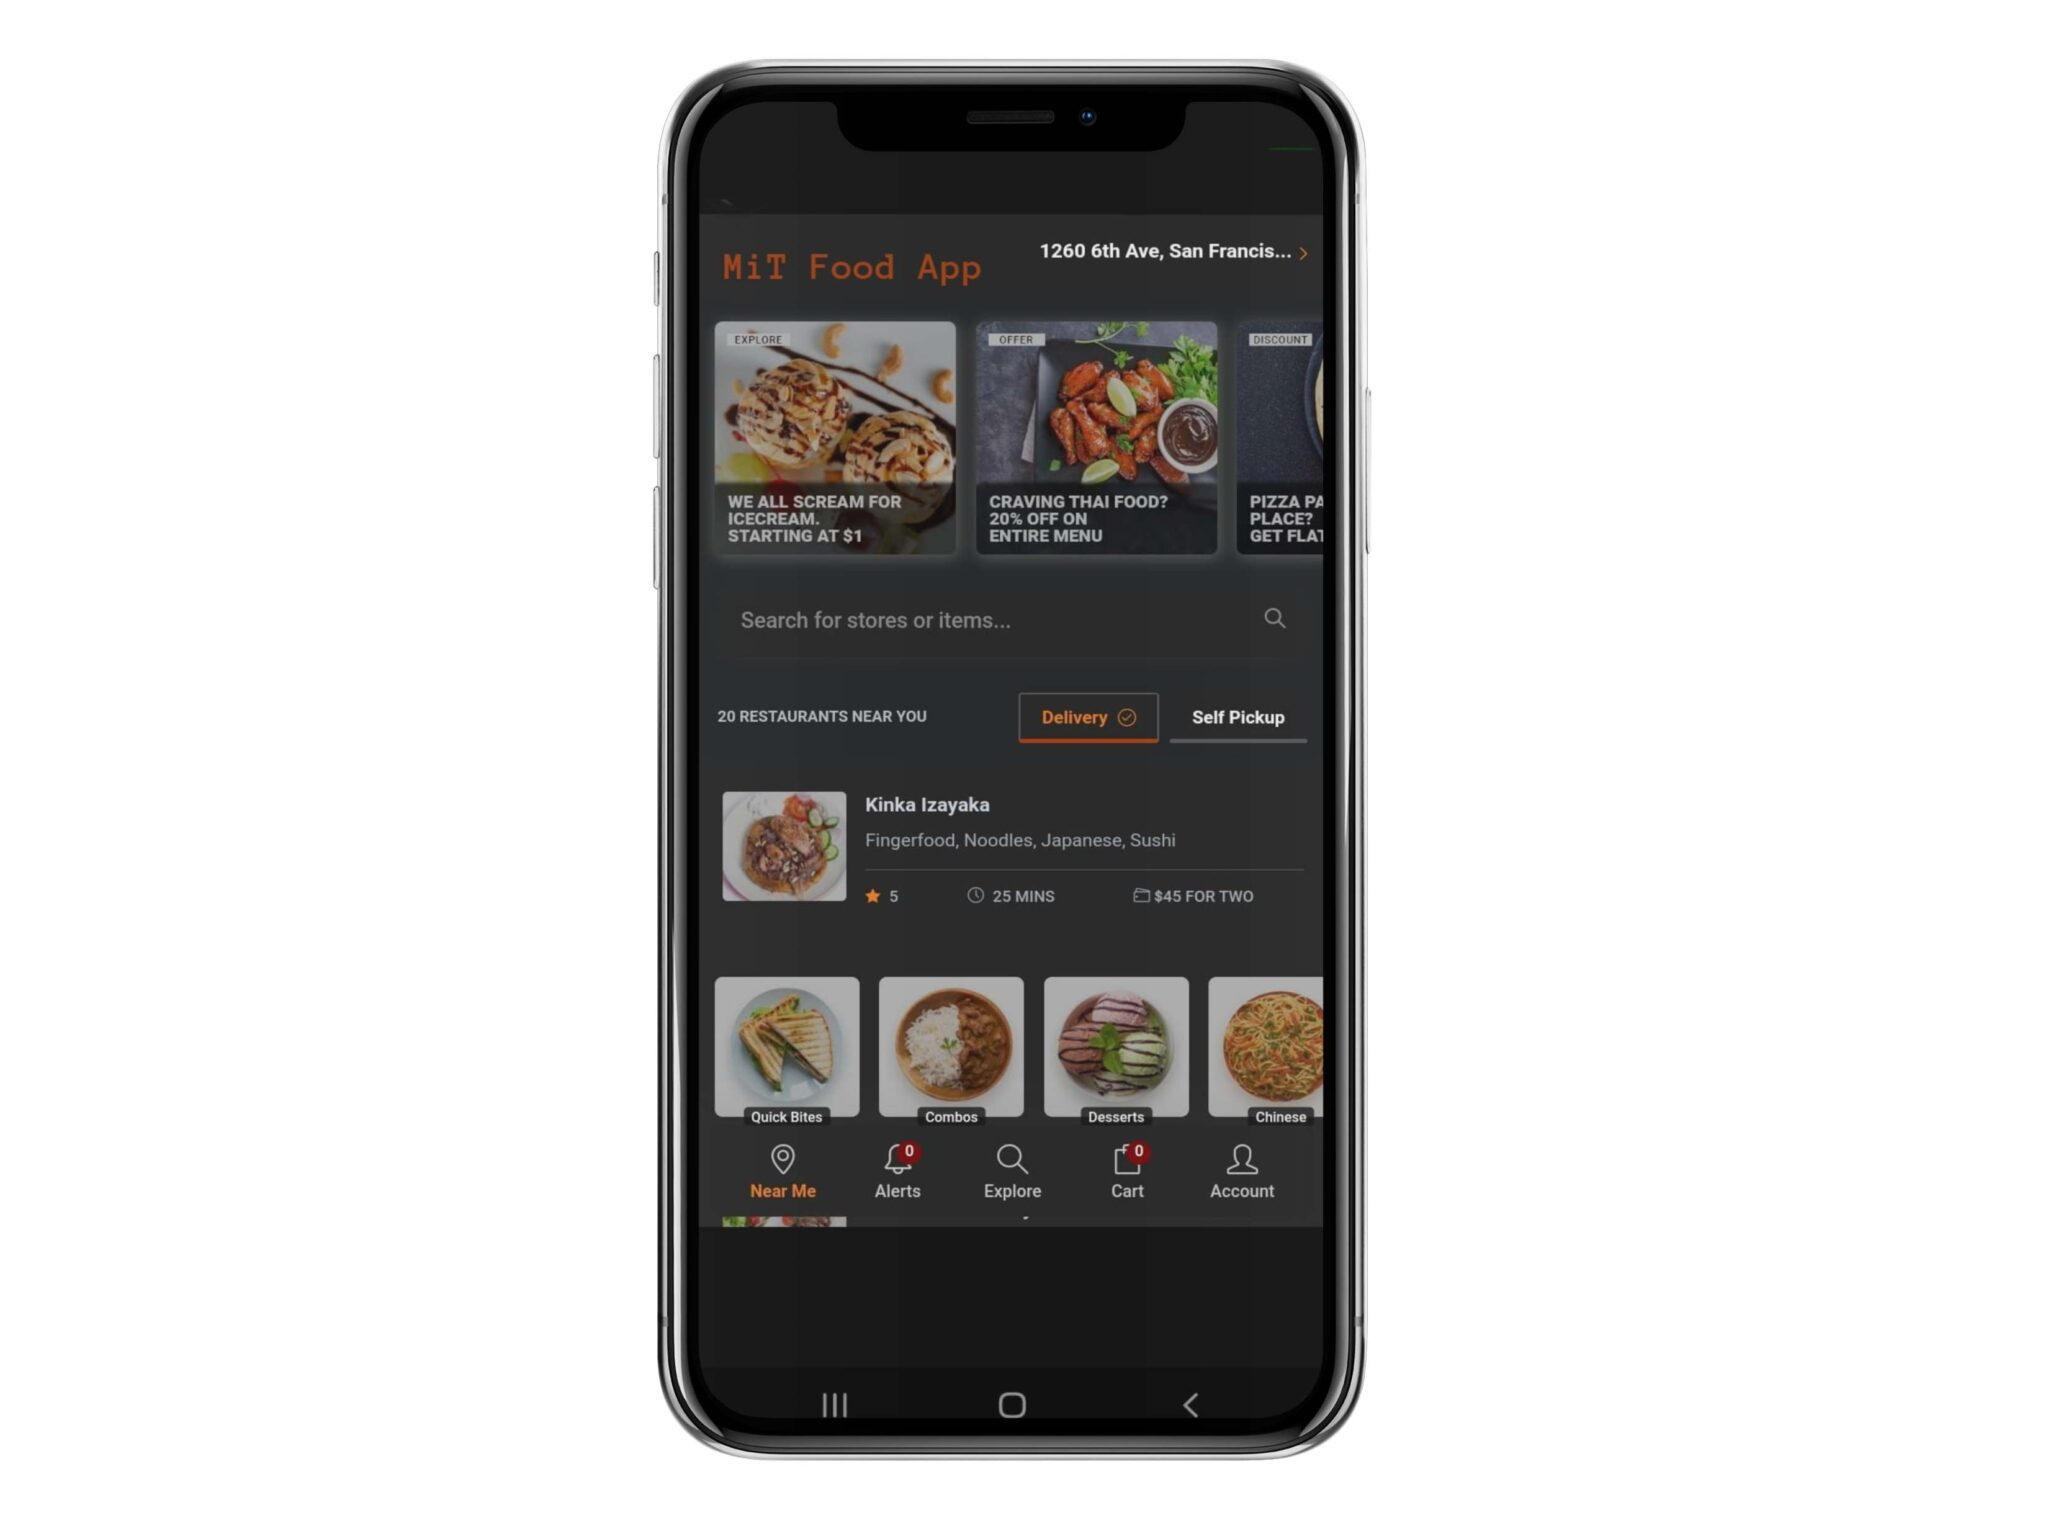 iphone x mockup against transparent background a17152 scaled MiT Food App